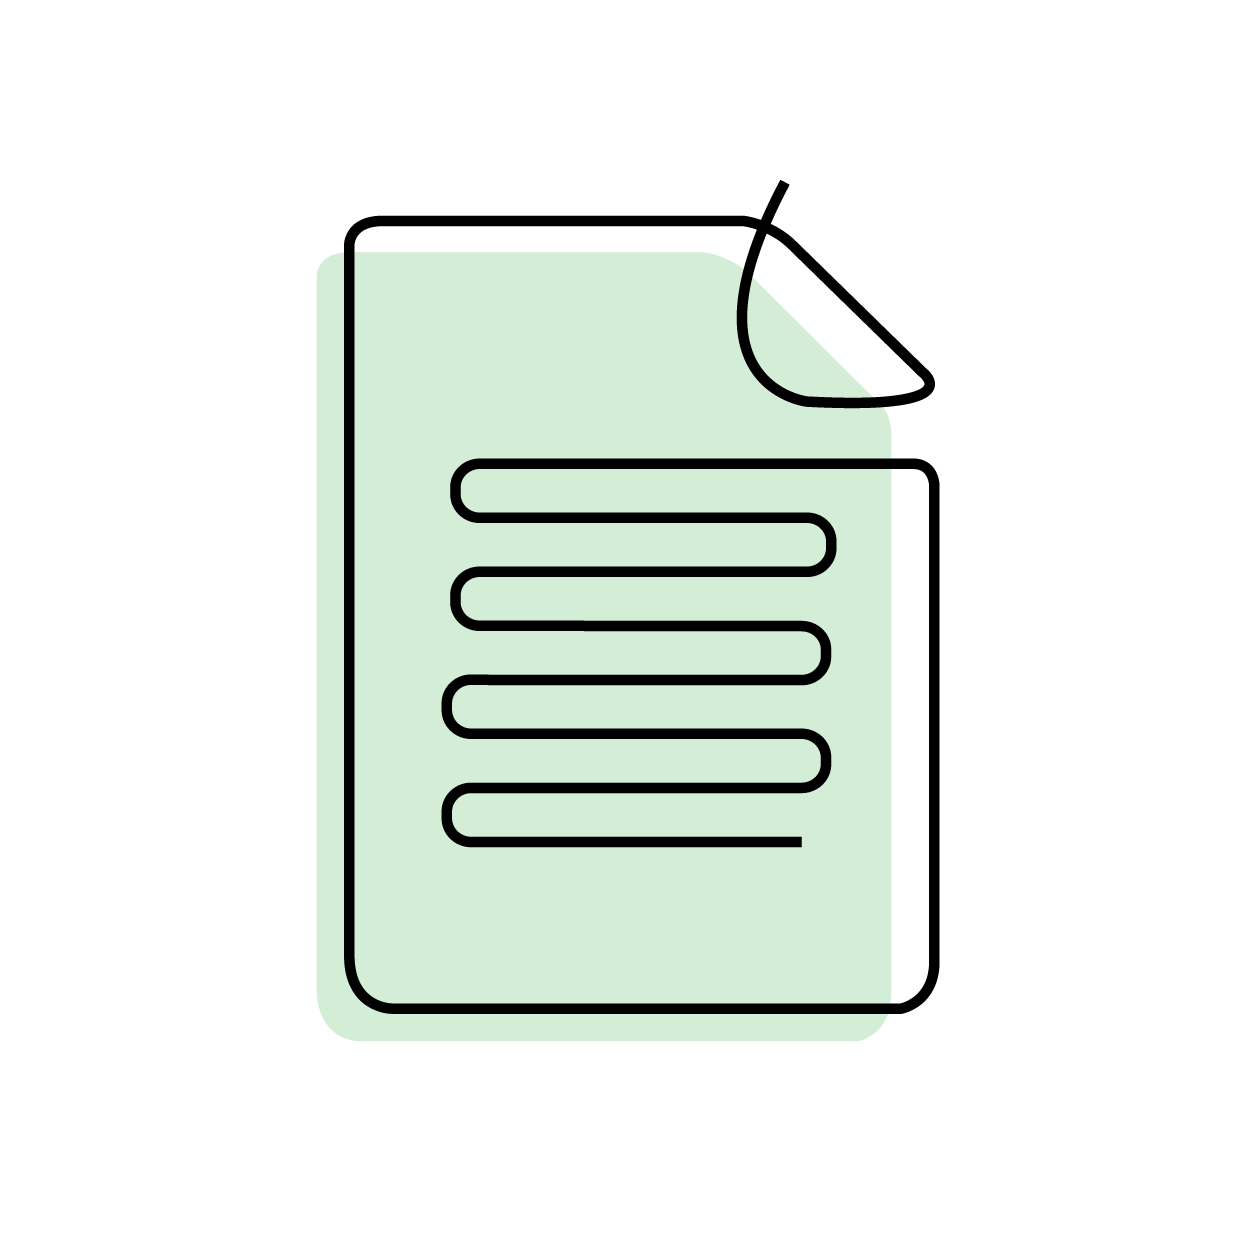 generic green document article illustration